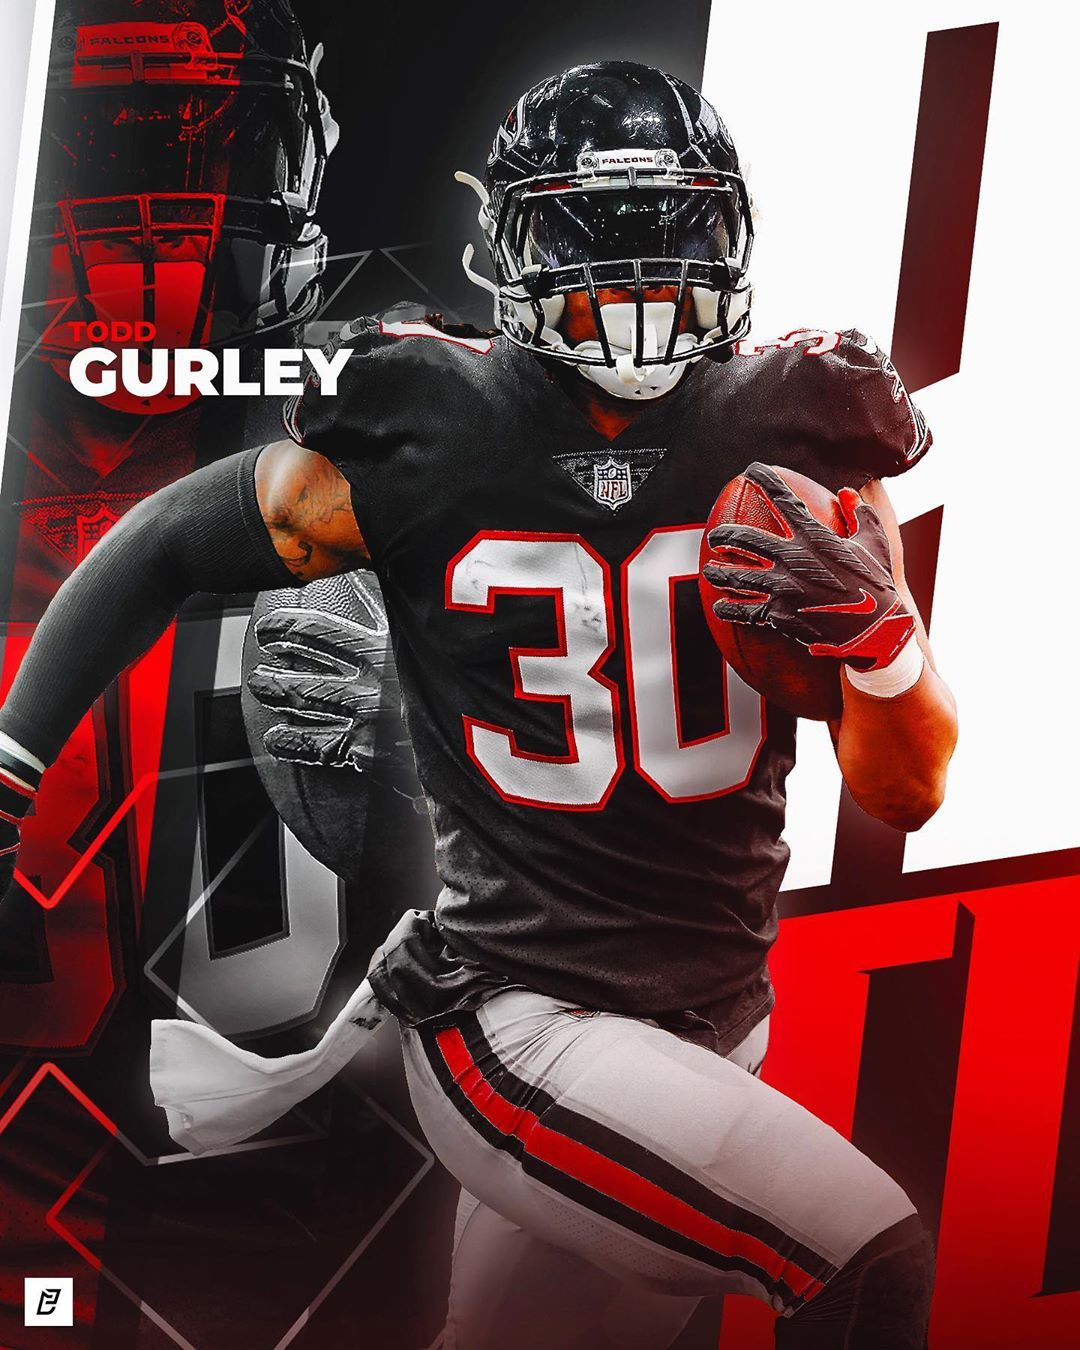 Enrique Castellano On Instagram Todd Gurley X Atlanta Falcons Would This Be Something Yo In 2020 Atlanta Falcons Football Nfl Football Art Atlanta Falcons Players